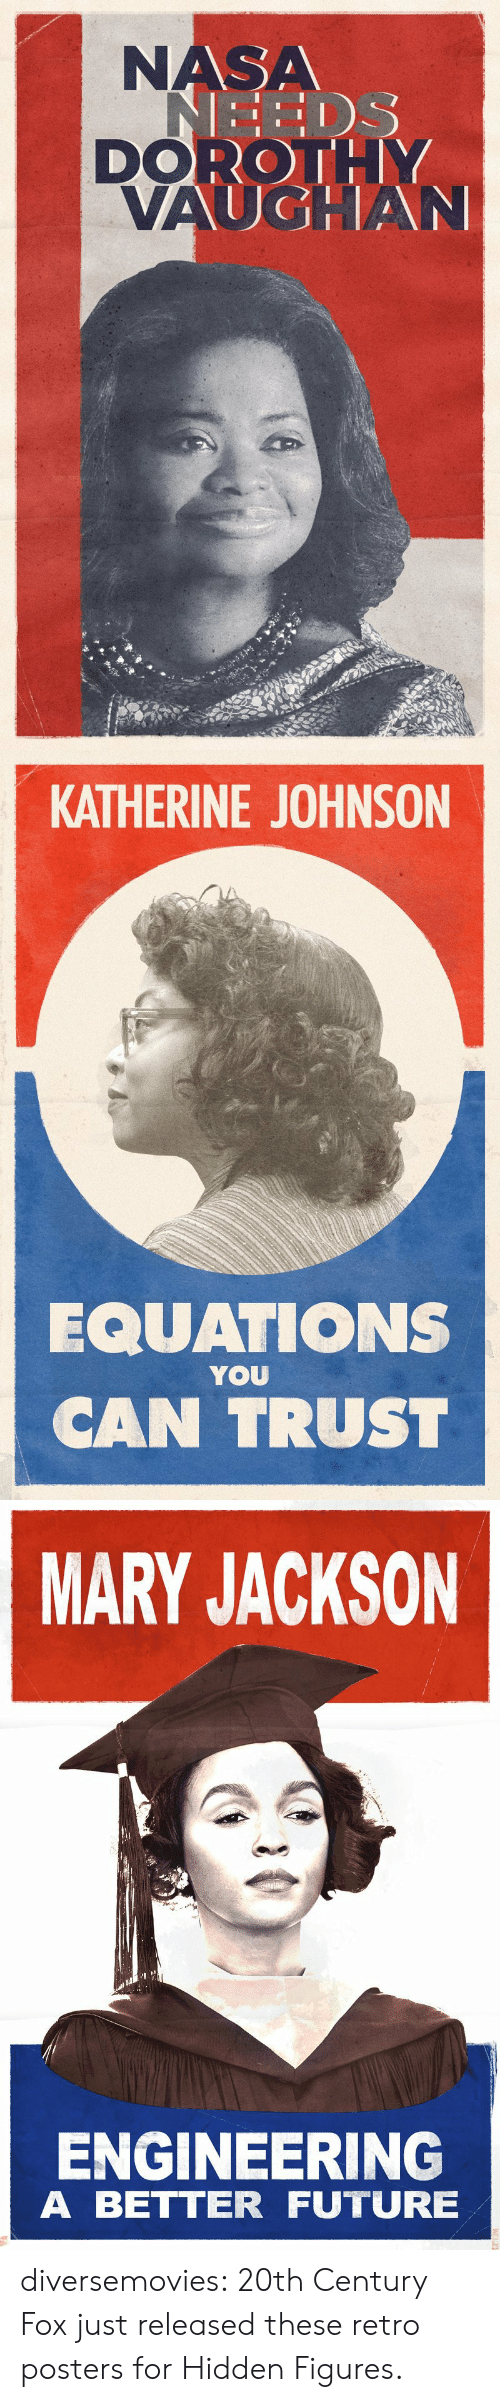 Future, Nasa, and Tumblr: NASA  DOROTL  EEDS   KATHERINE JOHNSON  EQUATIONS  CAN TRUST  YOU   MARY JACKSON  址  ENGINEERING  A BETTER FUTURE diversemovies:  20th Century Fox just released these retro posters for Hidden Figures.